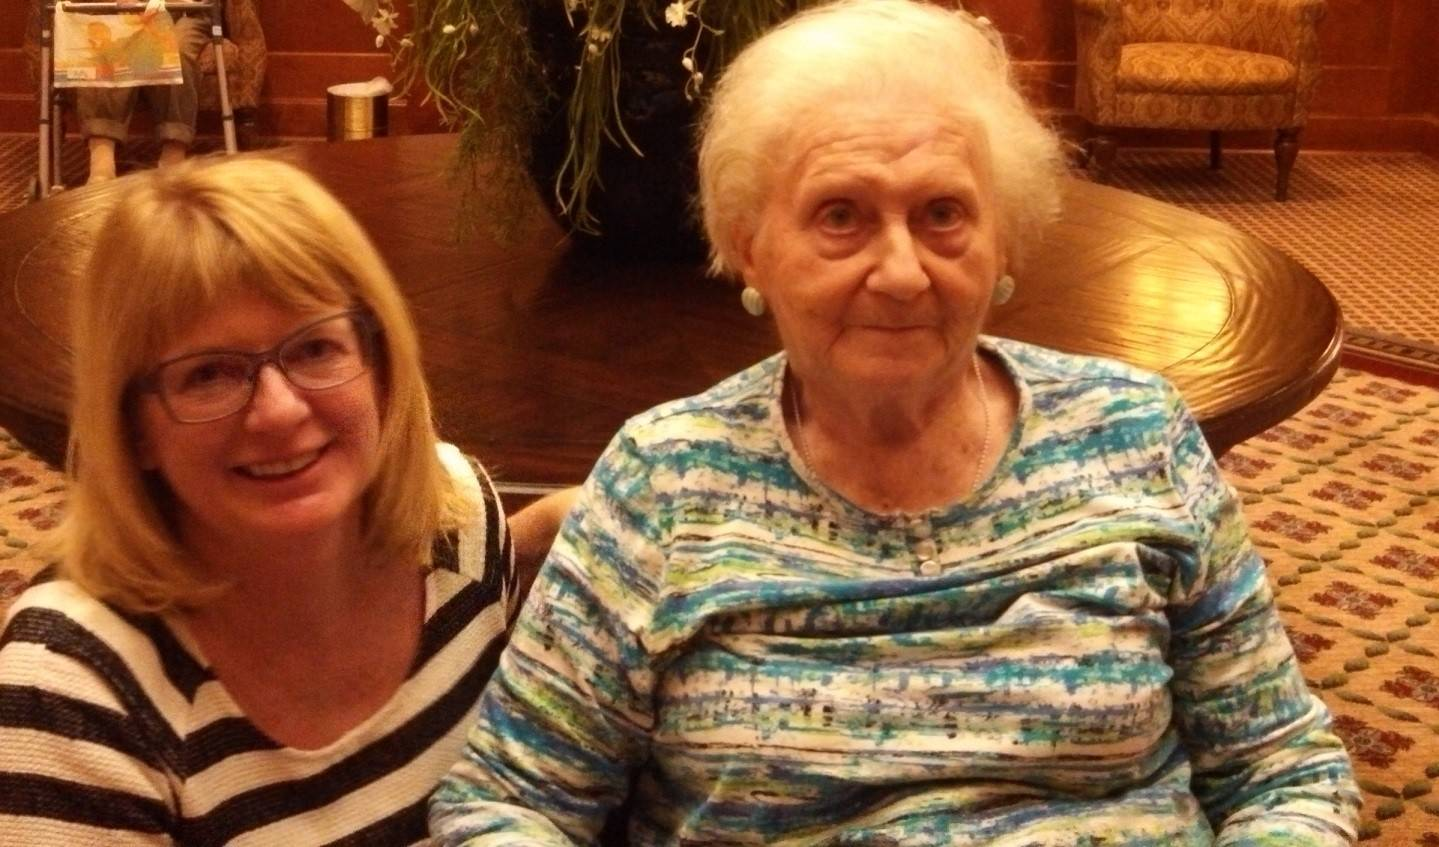 Joyce Rahn of Danville often drives to the Chicago area to help her siblings care for their mother, Edwardine Murphy of Des Plaines.